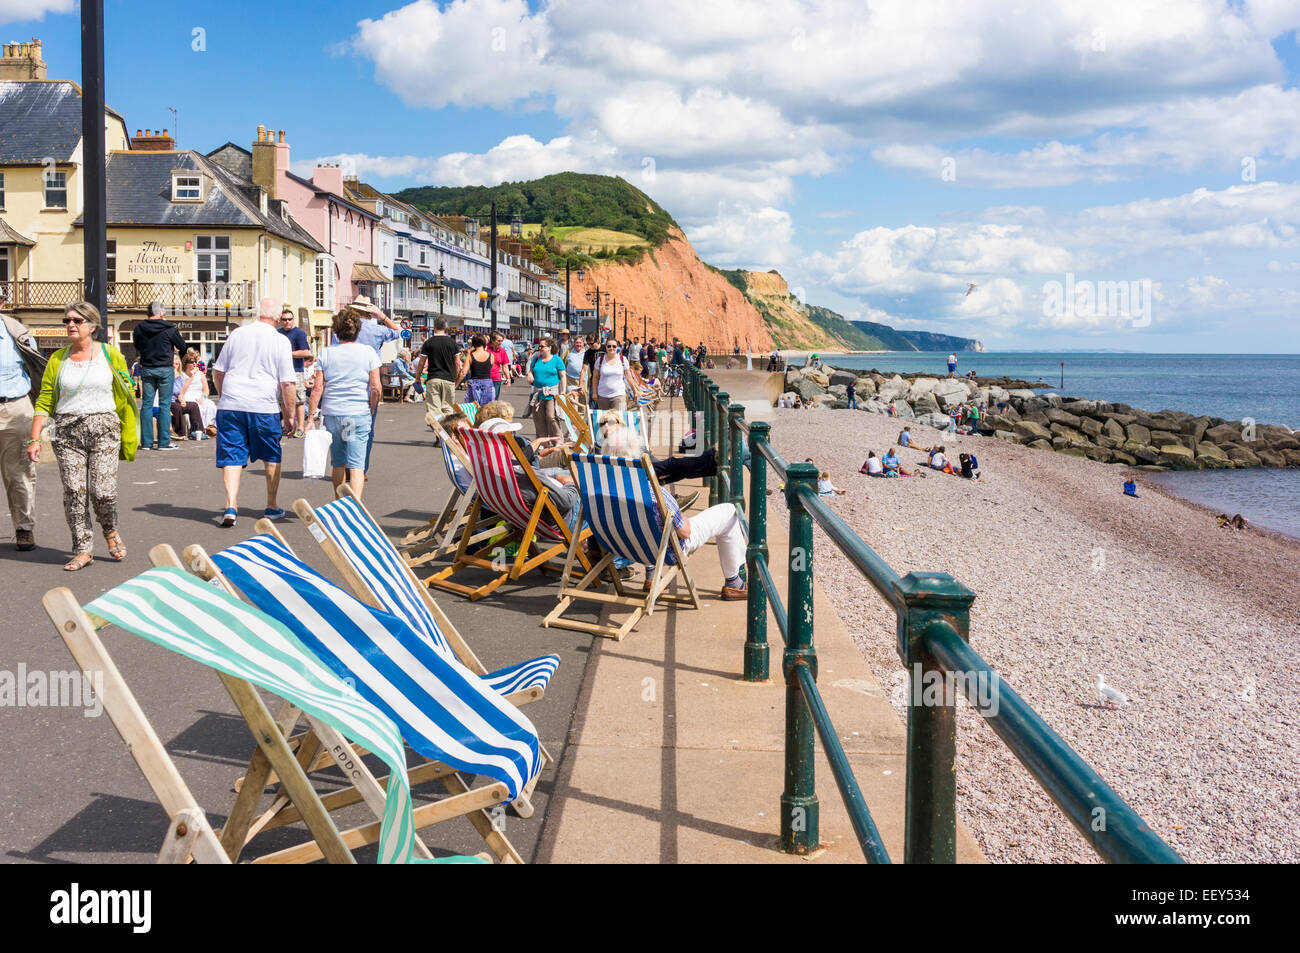 Deckchairs on the promenade at Sidmouth, East Devon, England, seaside UK in summer - Stock Image